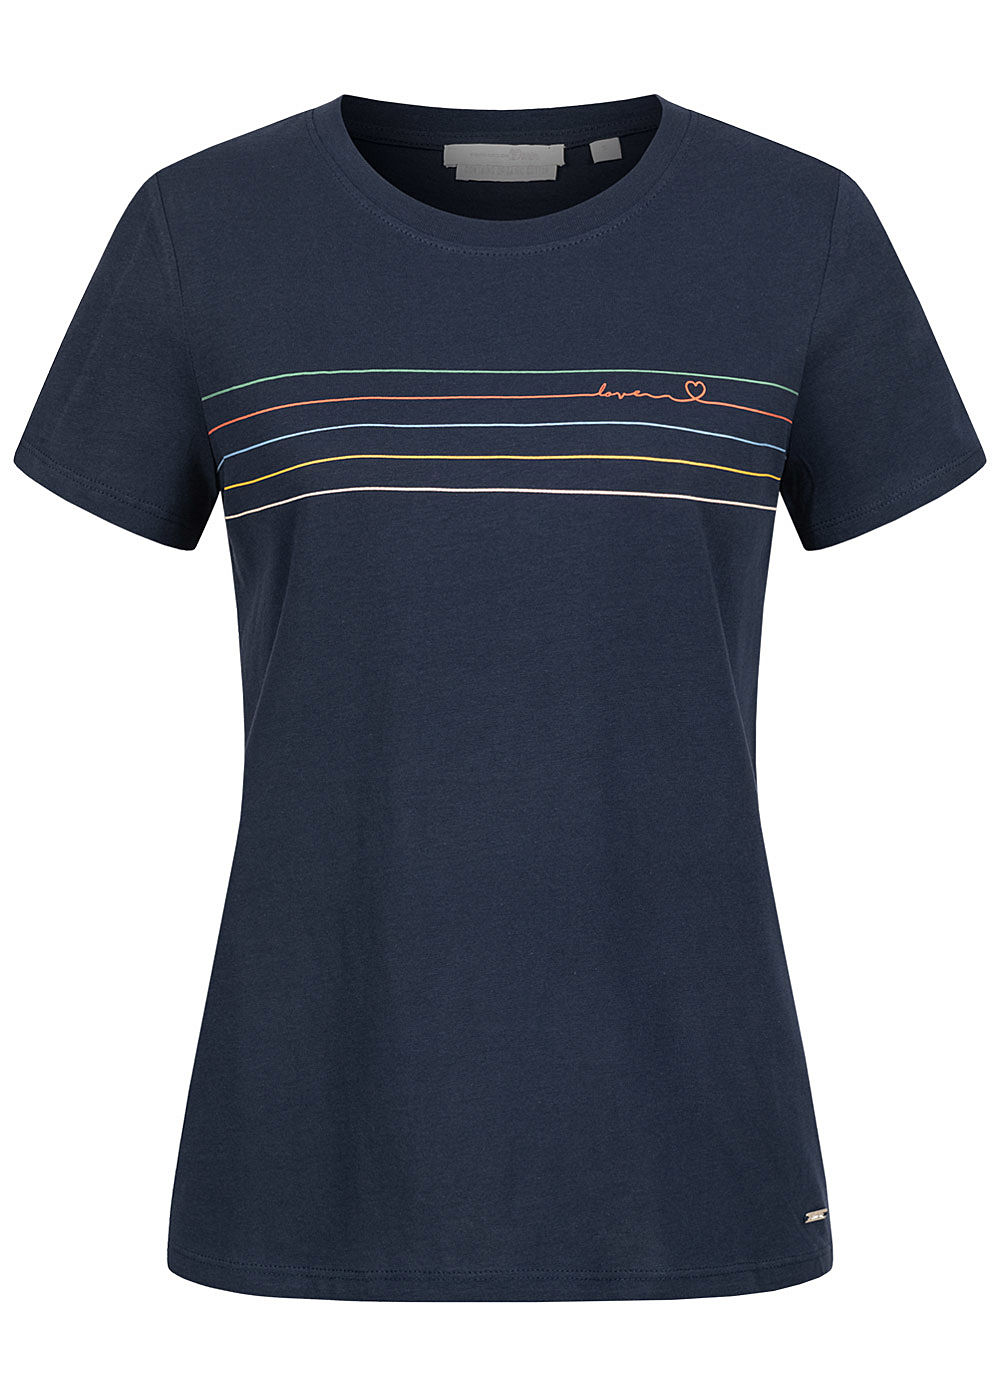 Tom Tailor Damen T-Shirt Multicolor Streifen Print vorn navy blau - Art.-Nr.: 20084013-XXL-NY